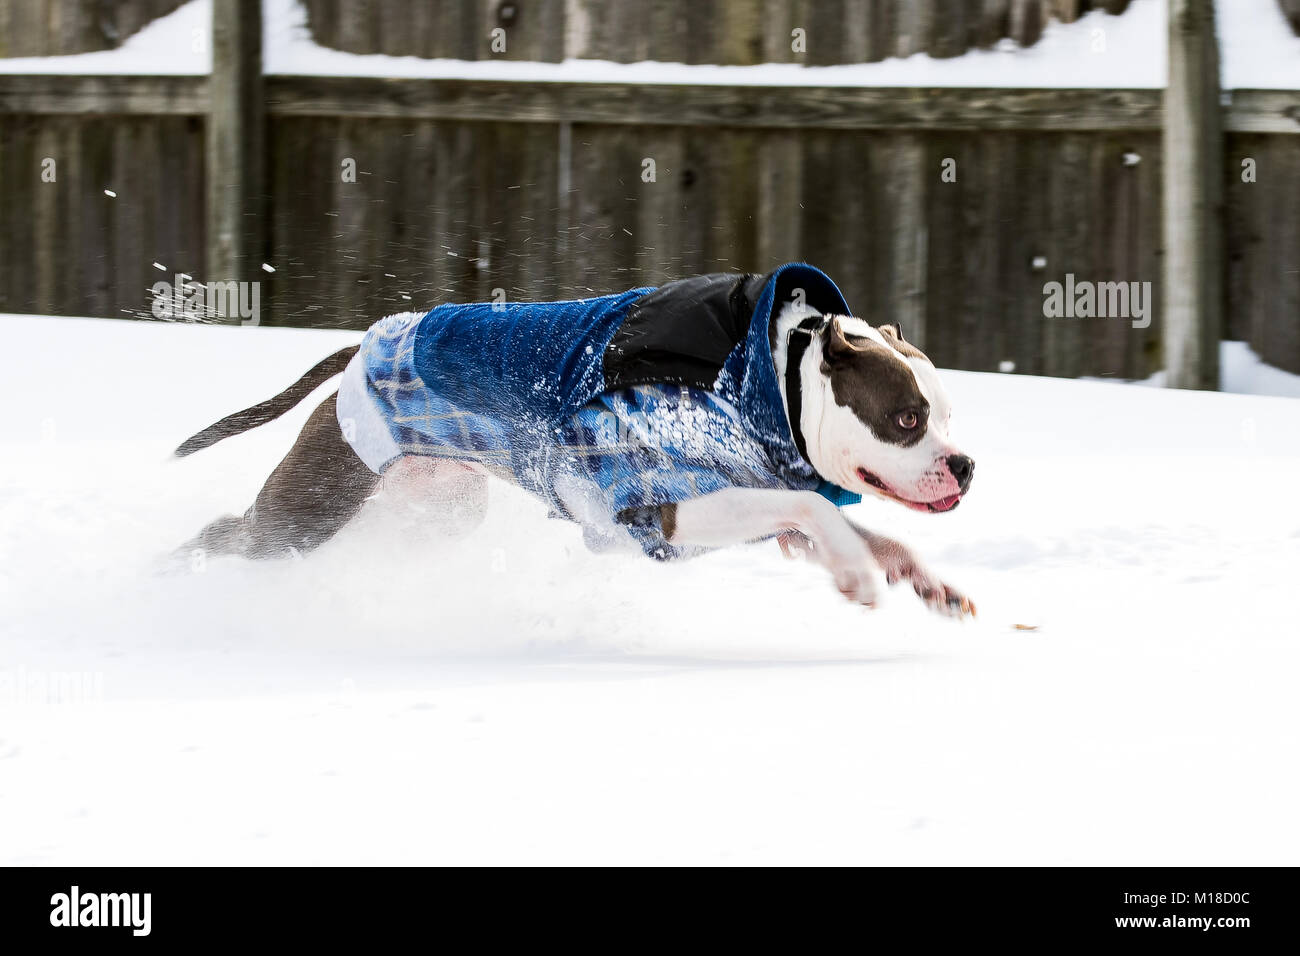 Staffordshire Terrier pit bull dog running and jumping through snow - Stock Image